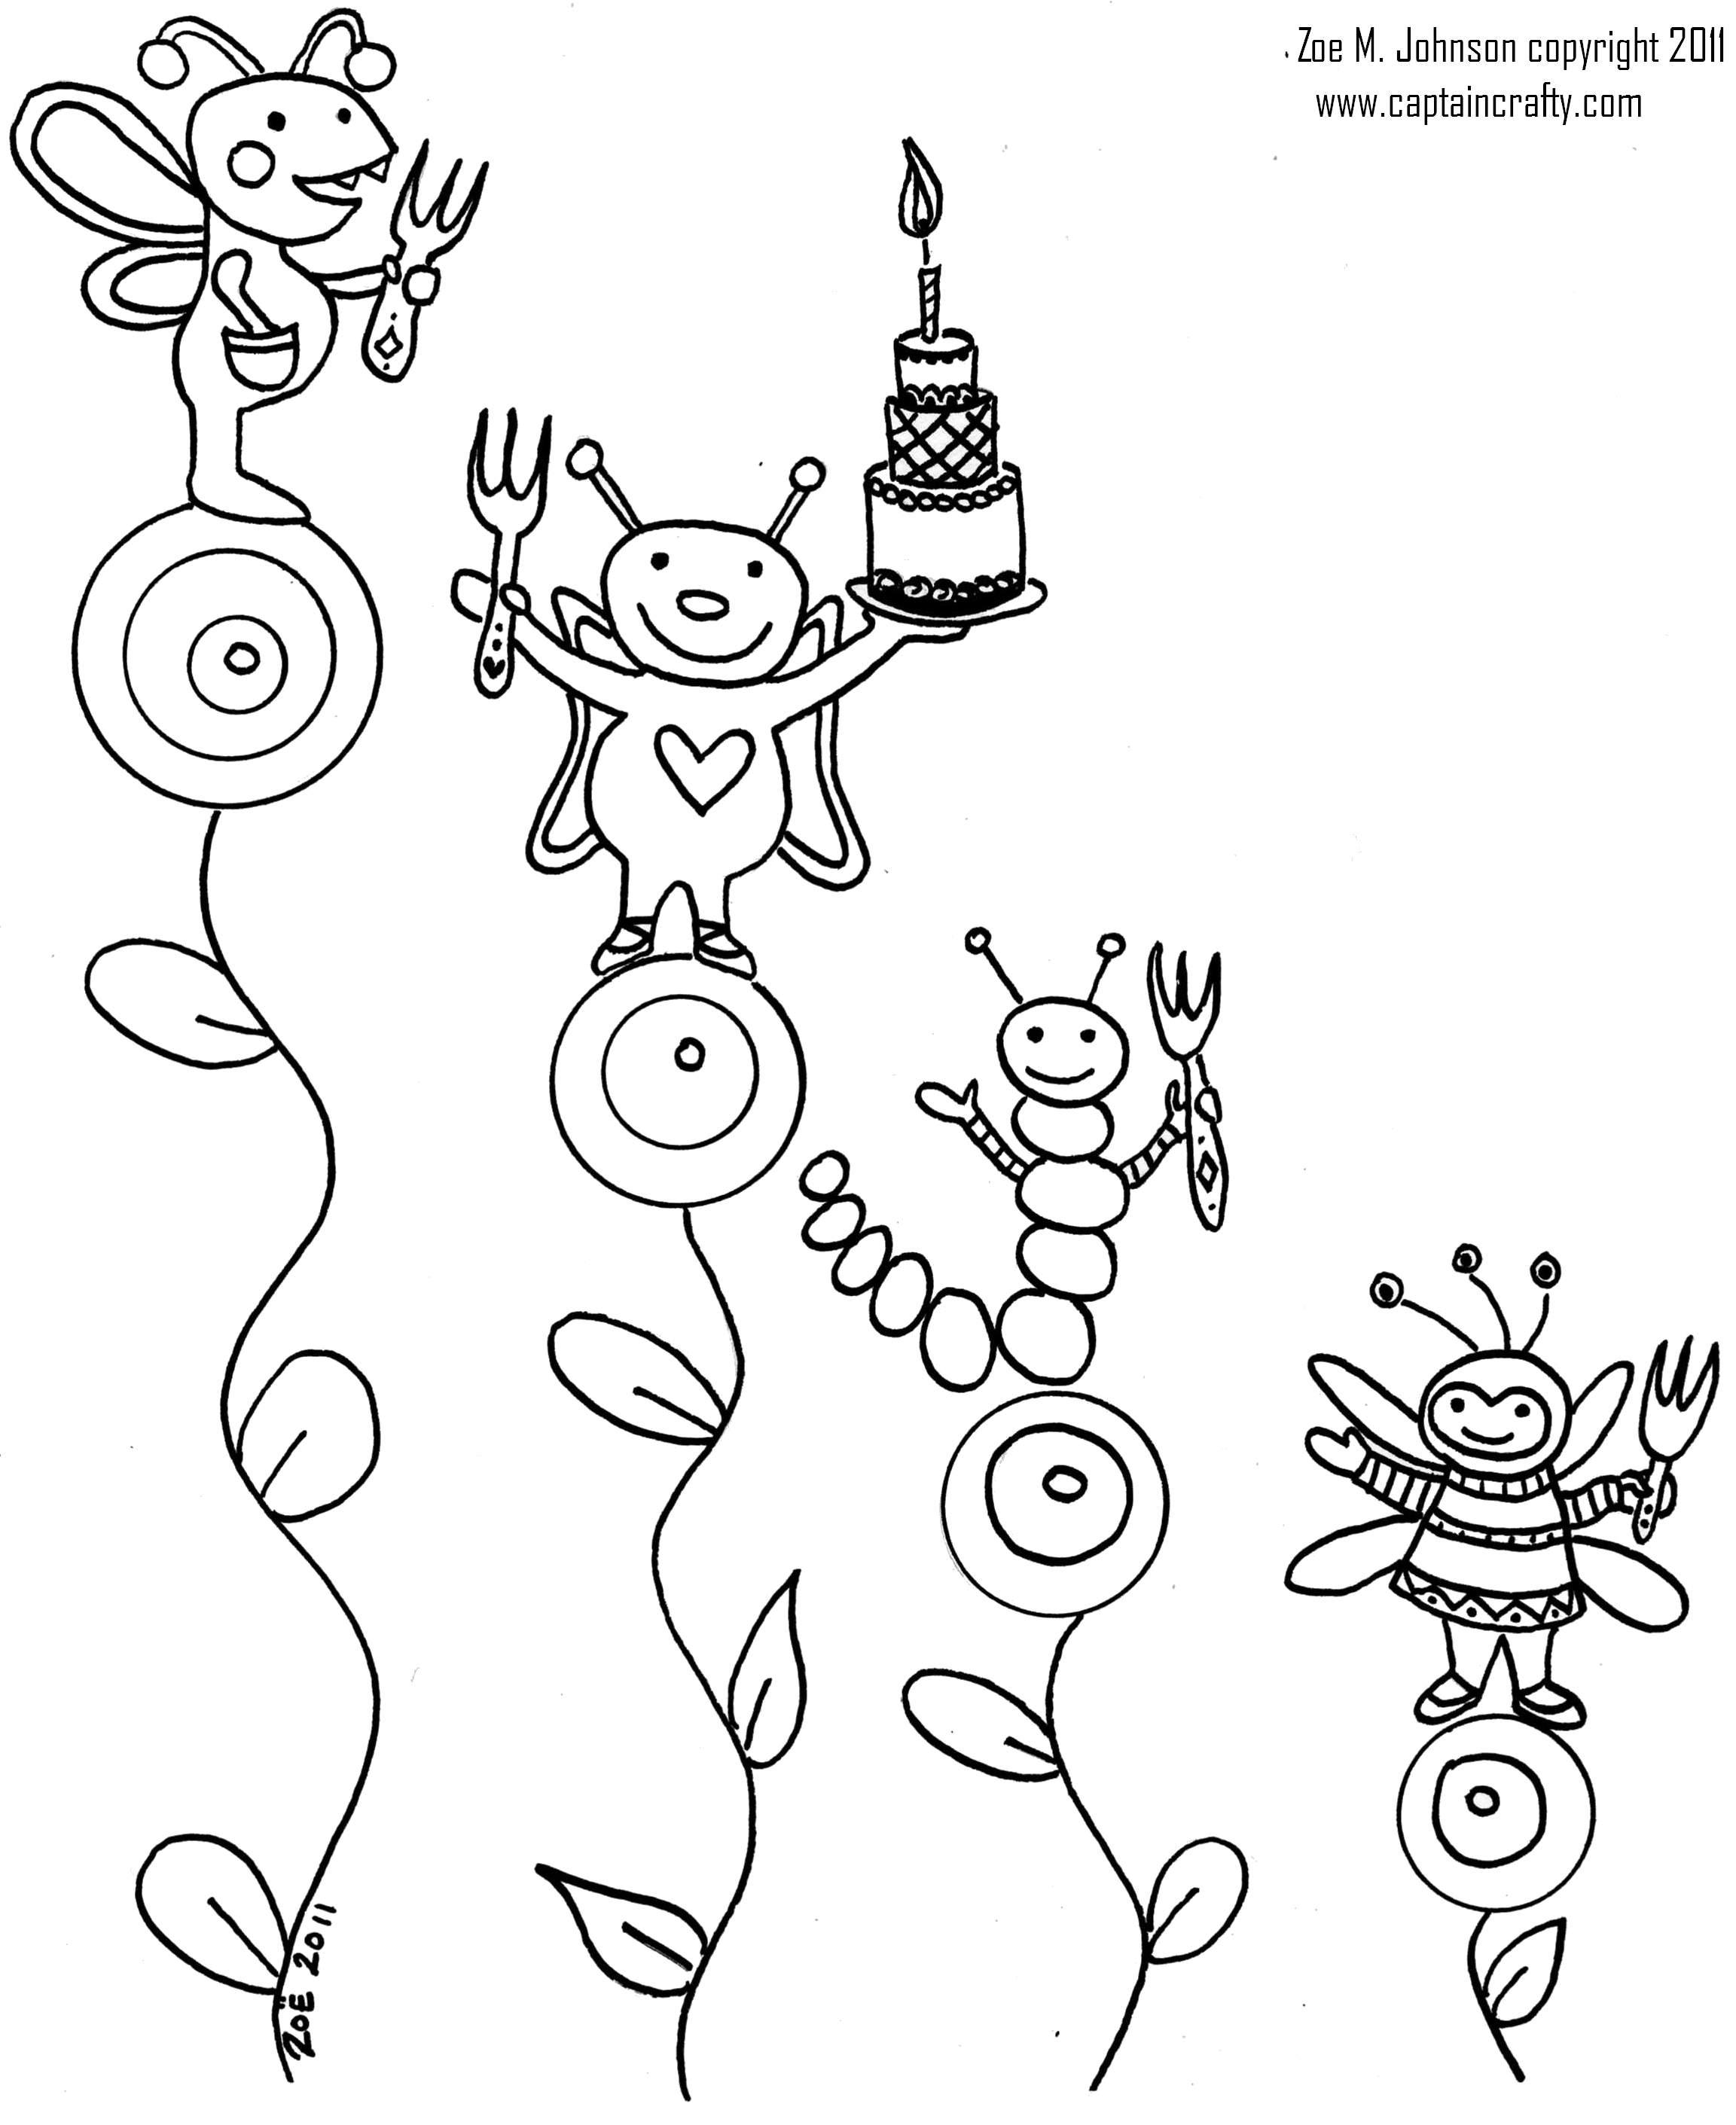 insect coloring sheets top 17 free printable bug coloring pages online insect sheets coloring